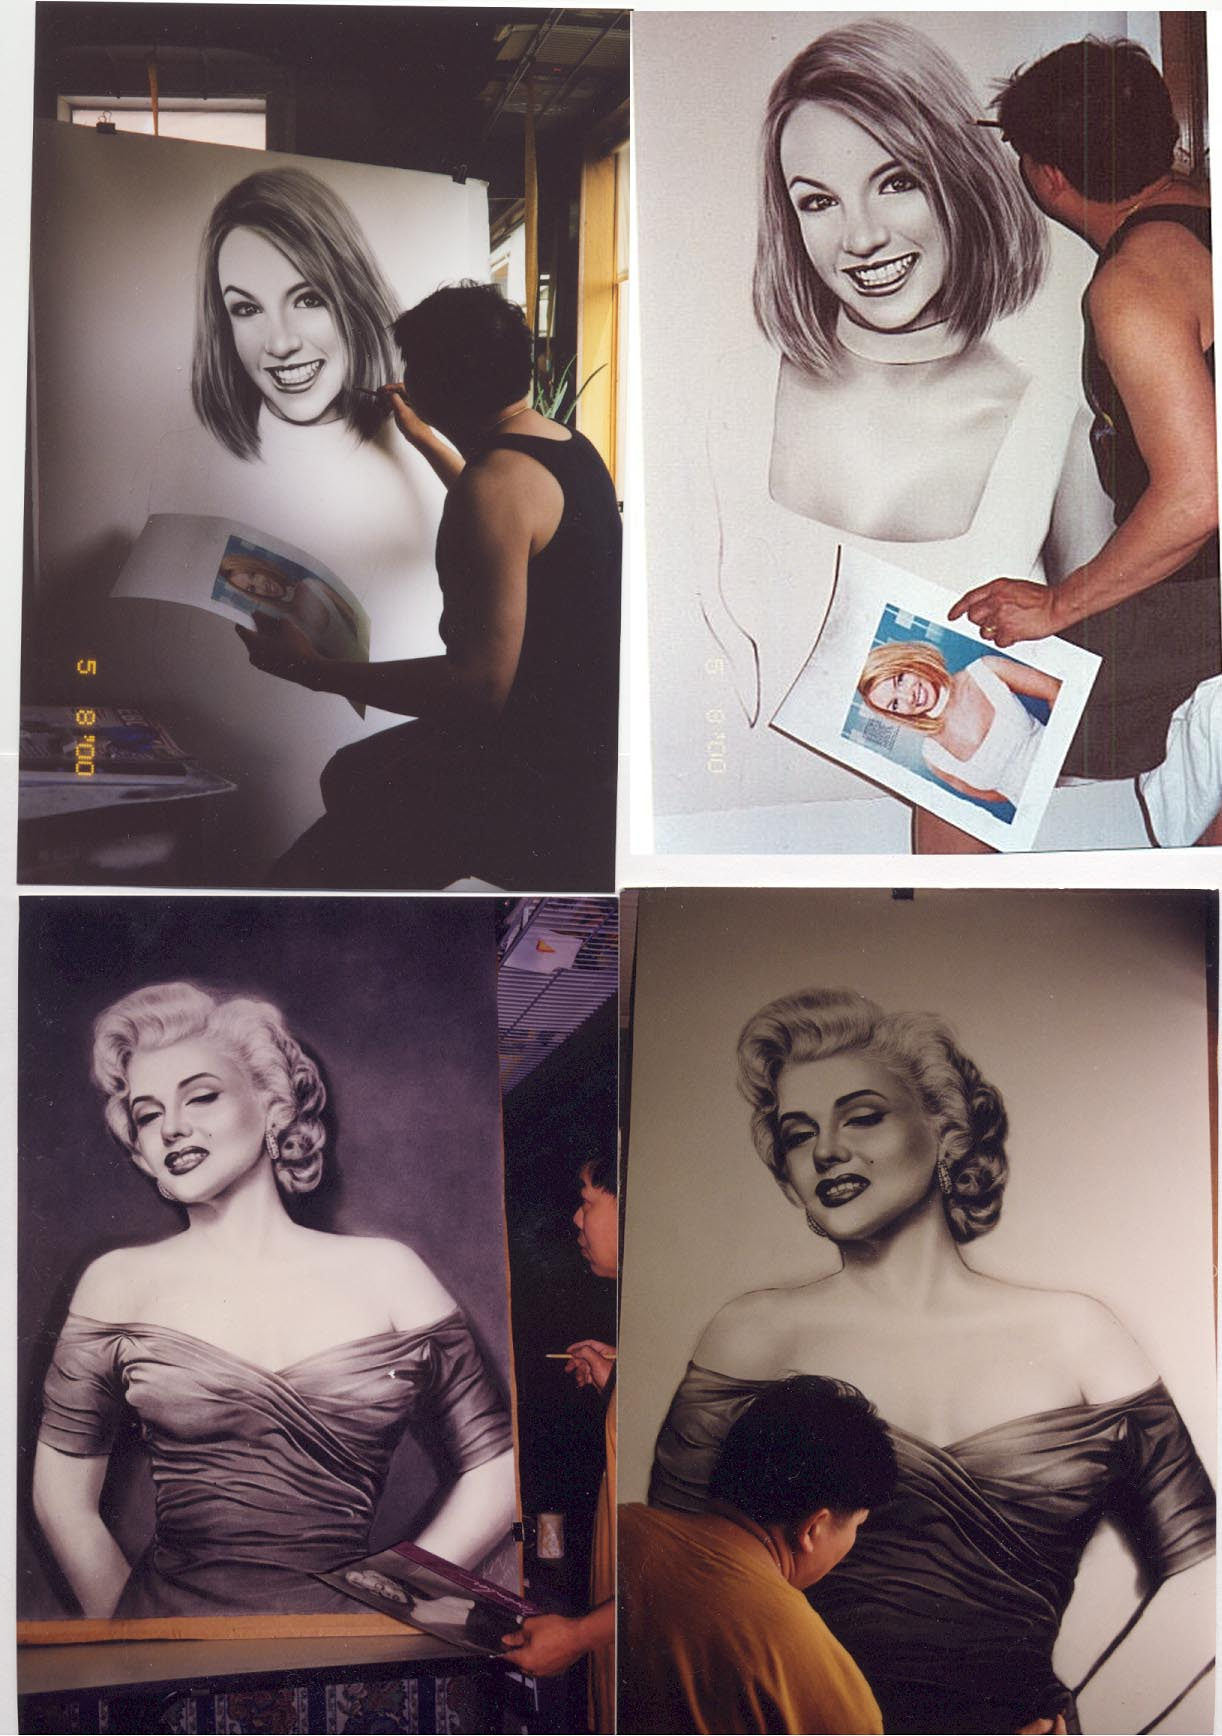 Britney Spears and Marilyn Monroe